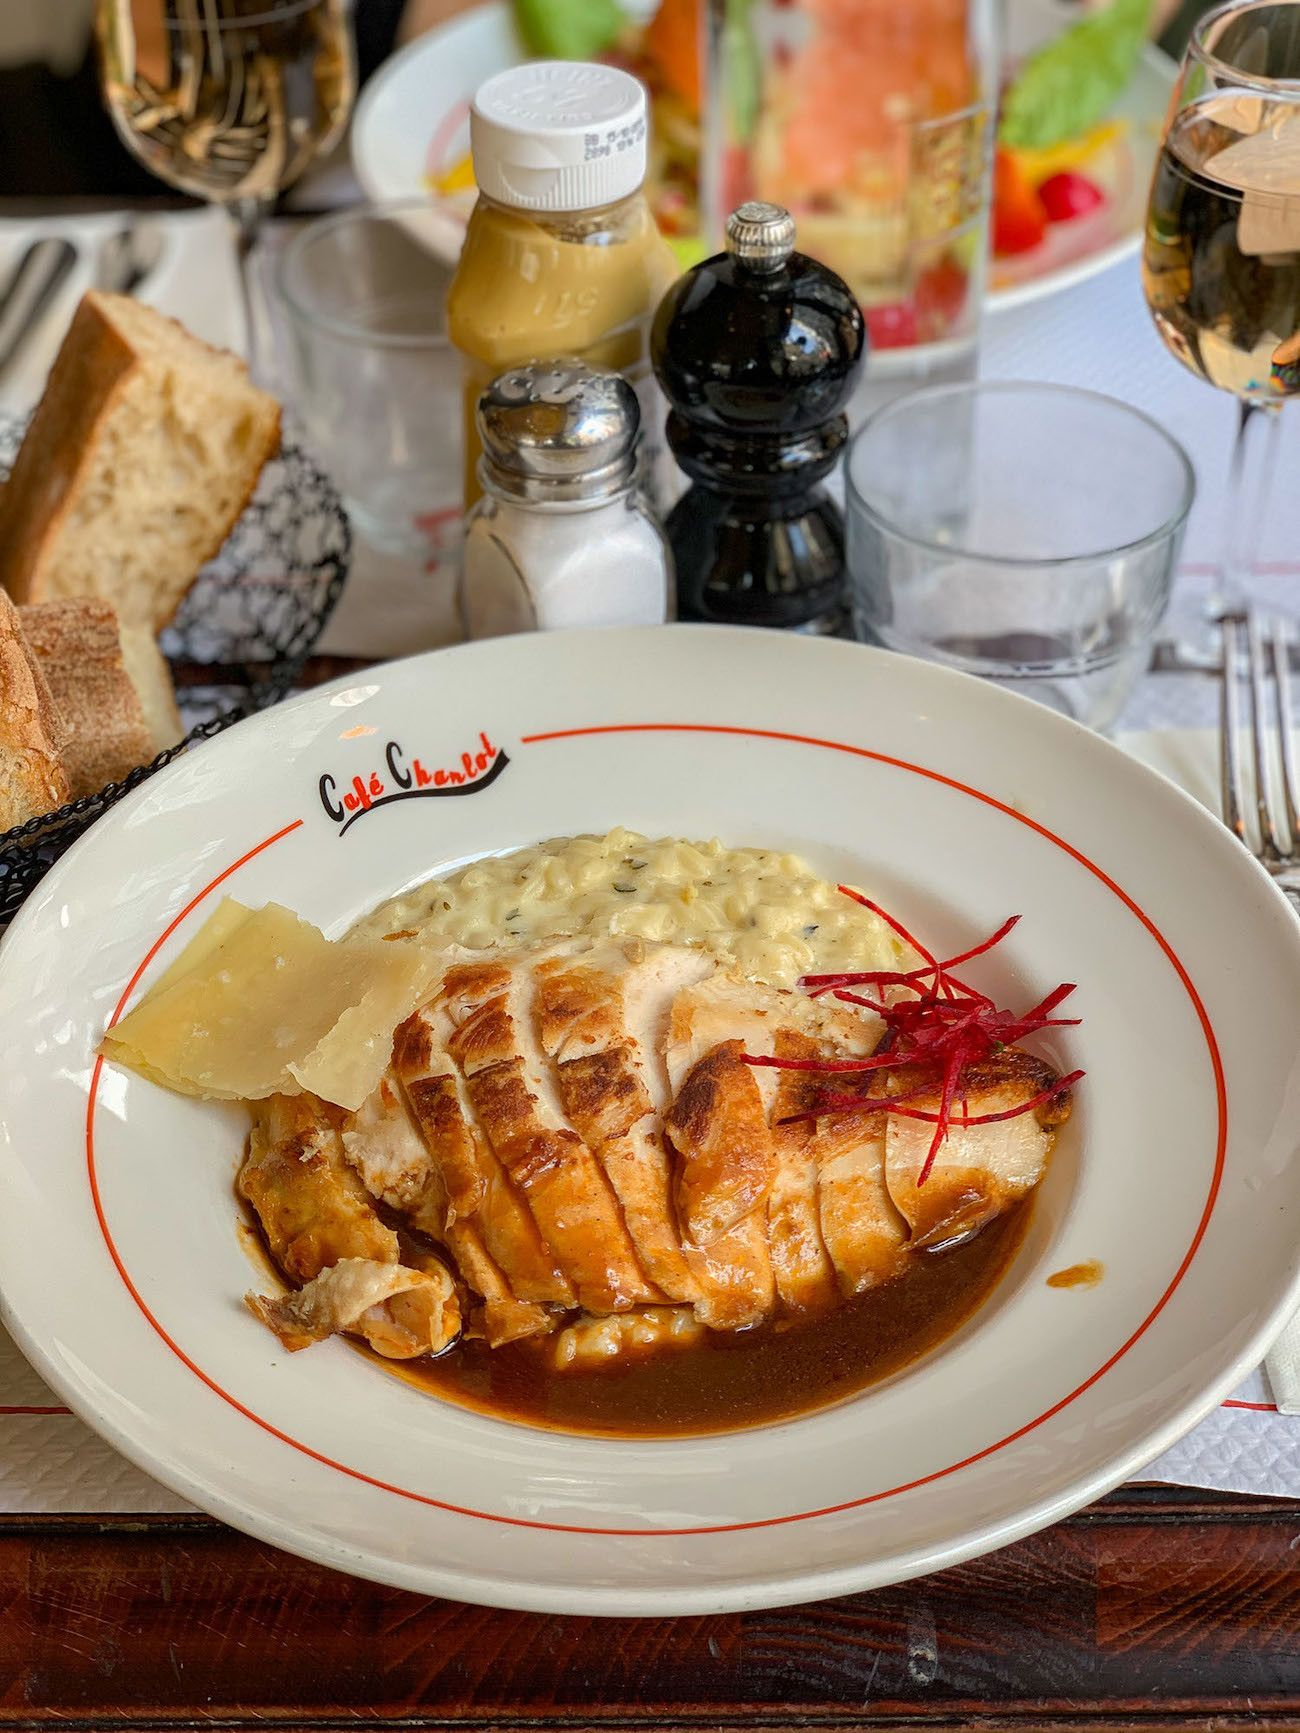 Foodblog About Fuel, Paris, Cafe Charlot, Risotto, Senf